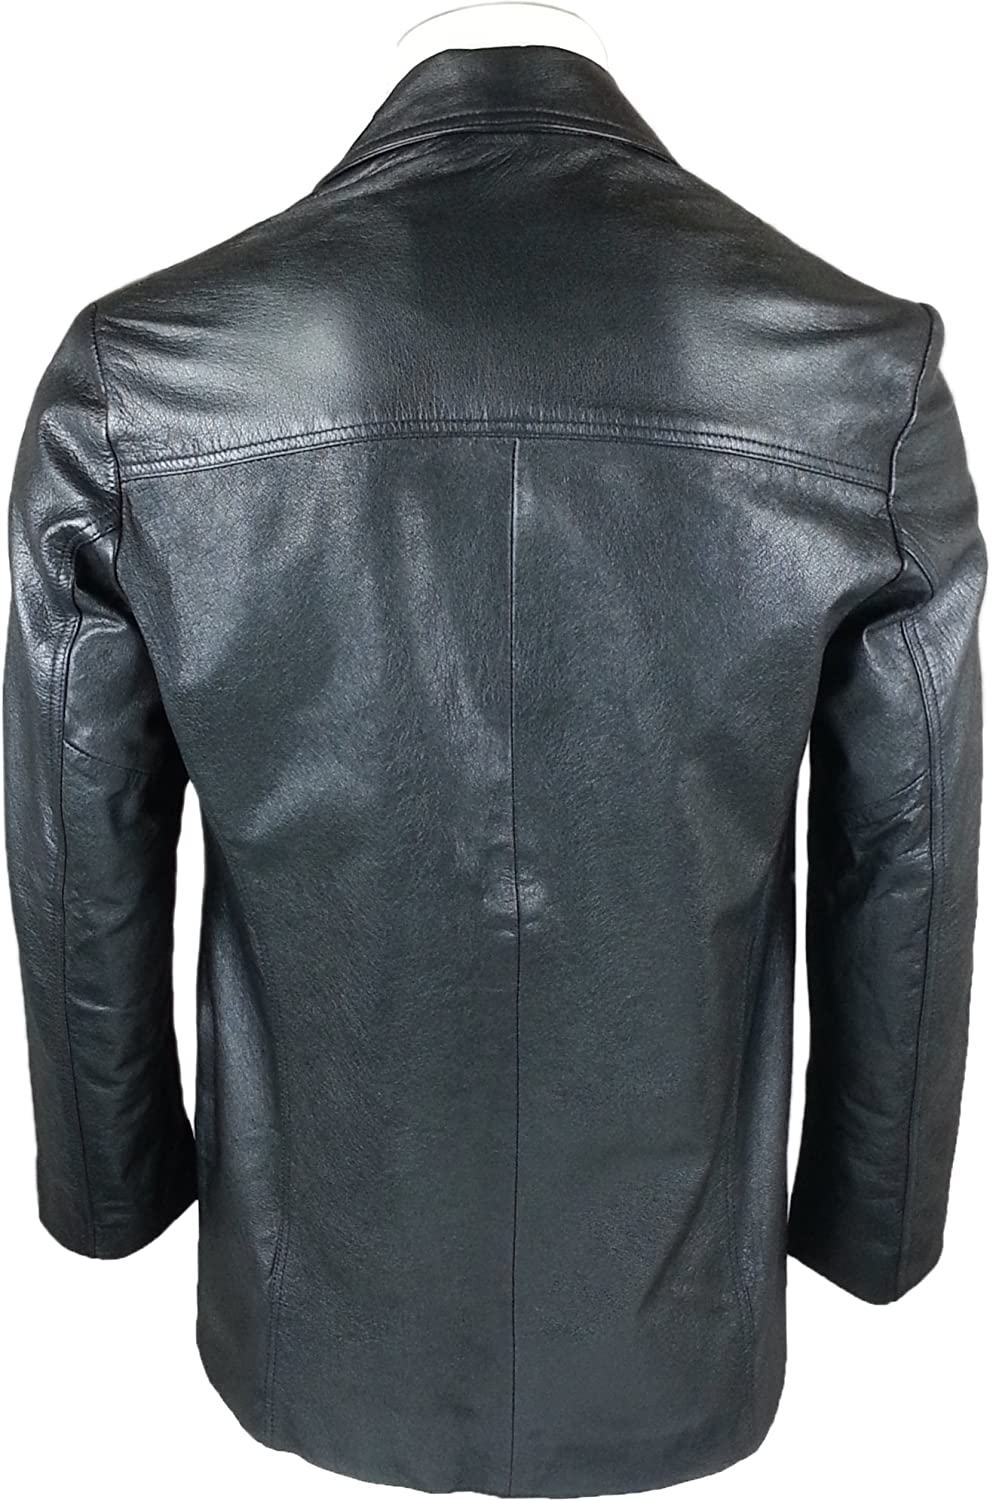 UNICORN Mens Real Leather Jacket Classic Fitted Style Suit Blazer Black GT # T9 (XXL): Amazon.ca: Clothing & Accessories